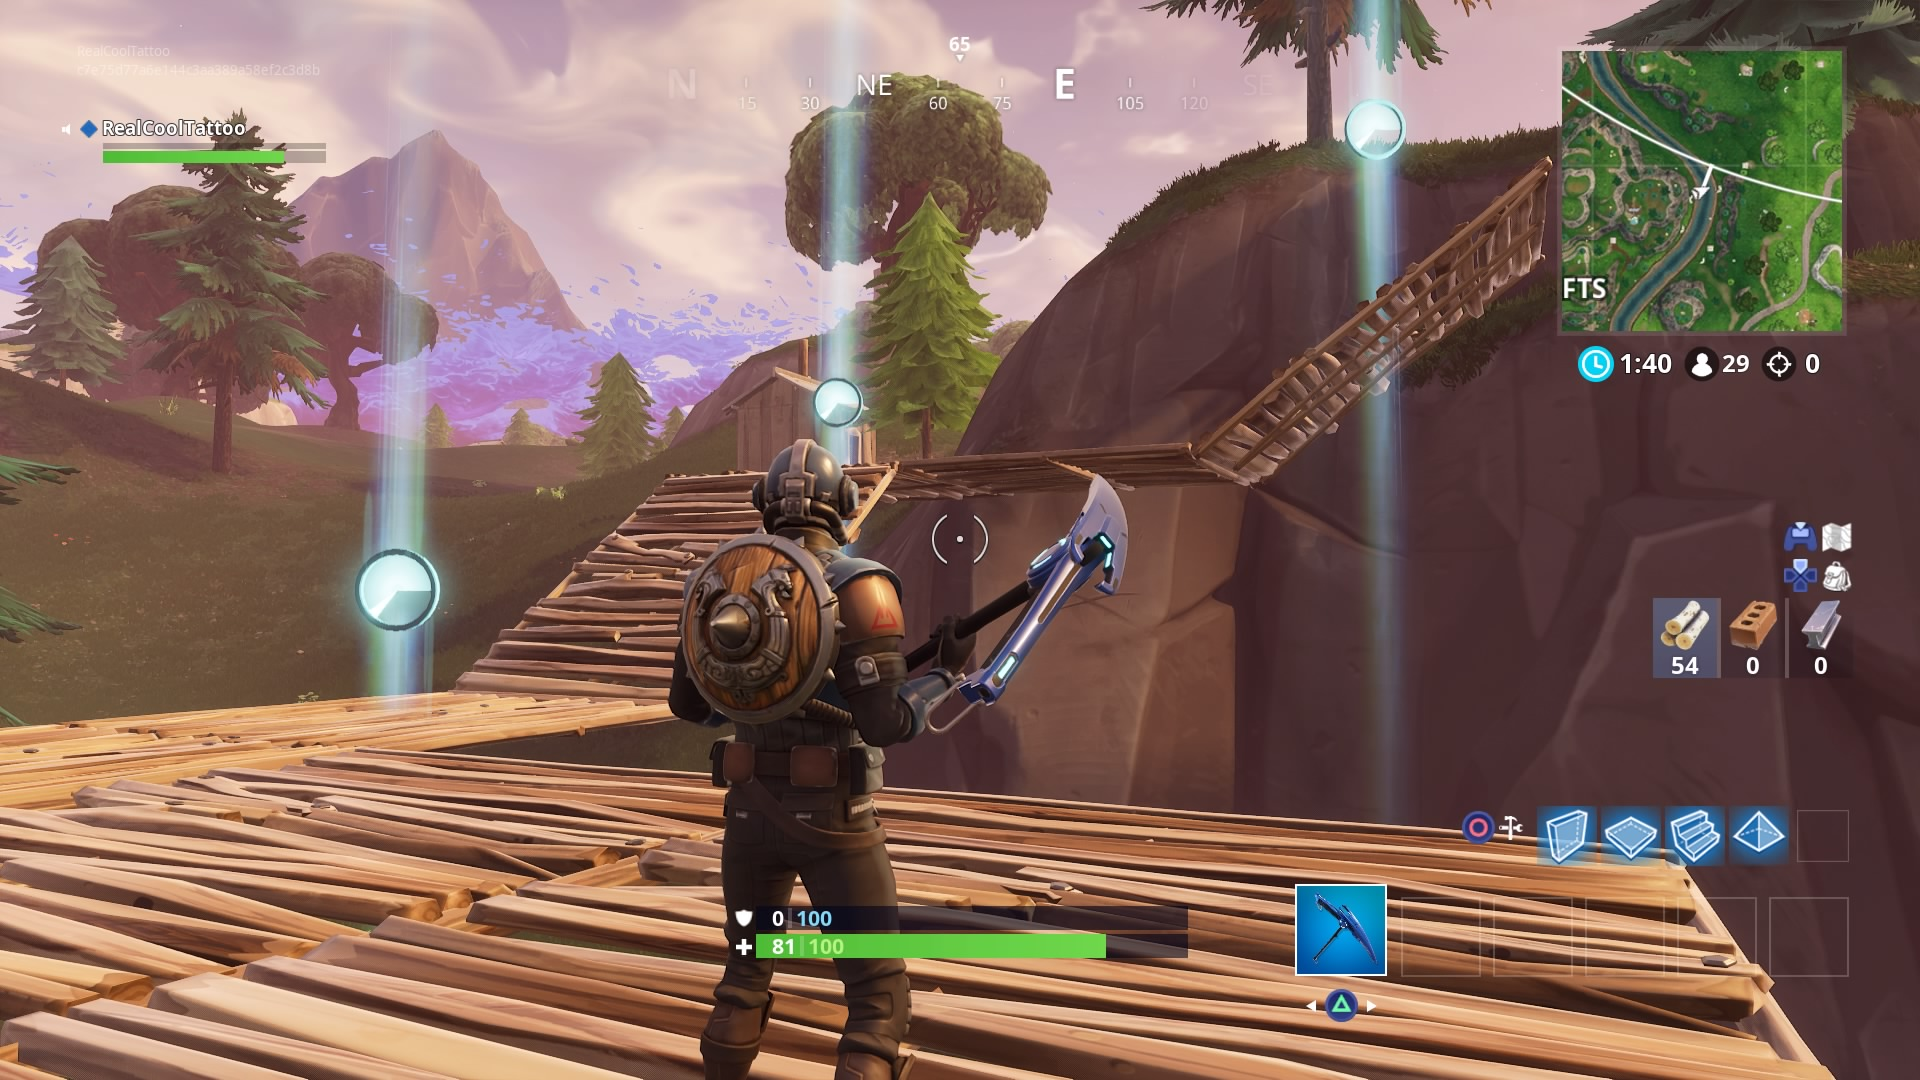 Fortnite How To Complete Timed Trials Locations And Tips Evil